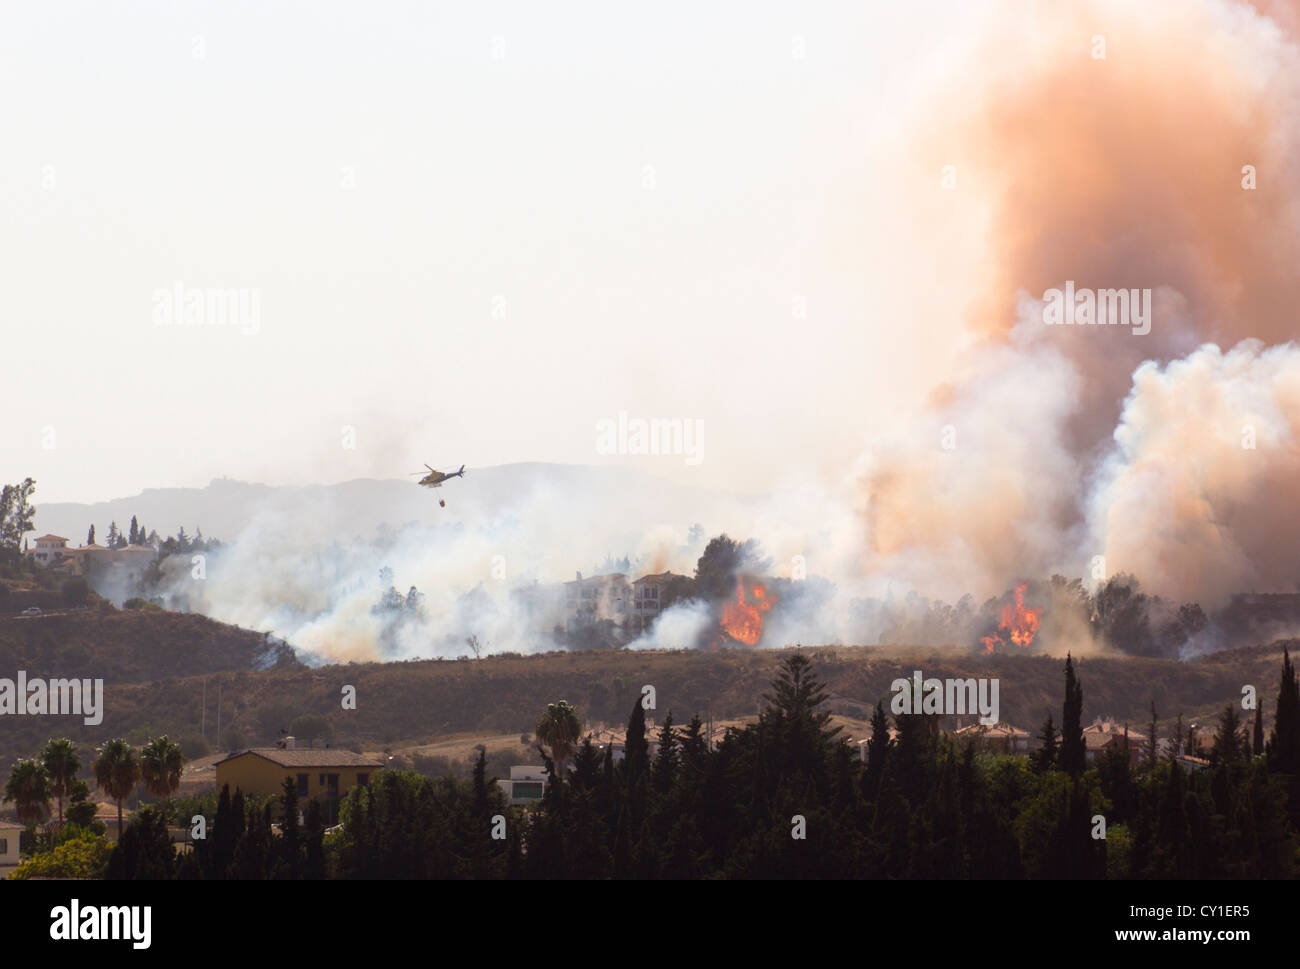 Rescue helicopter helping to extinguish wildfire. Mijas Costa, Malaga, Costa del Sol, Andalucia, Spain. - Stock Image